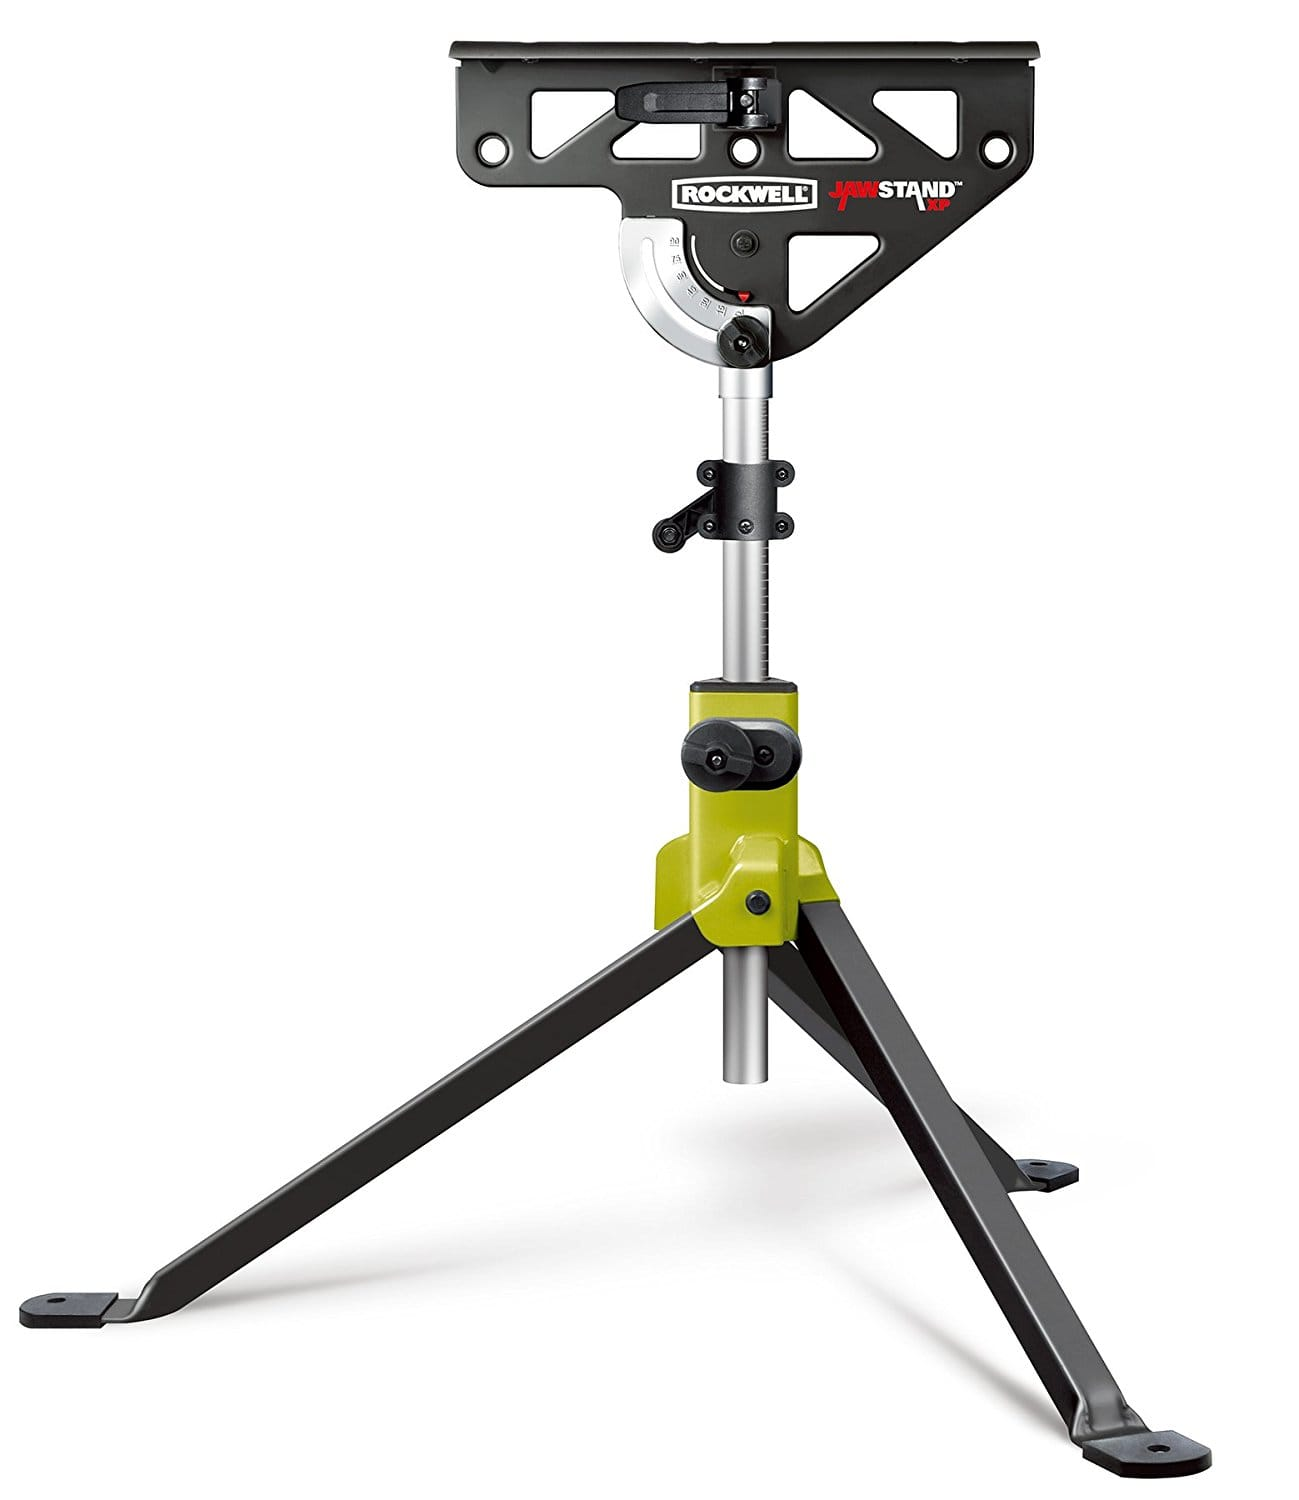 Rockwell RK9034 JawStand XP Work Support Stand $51.46 FS @ Amazon